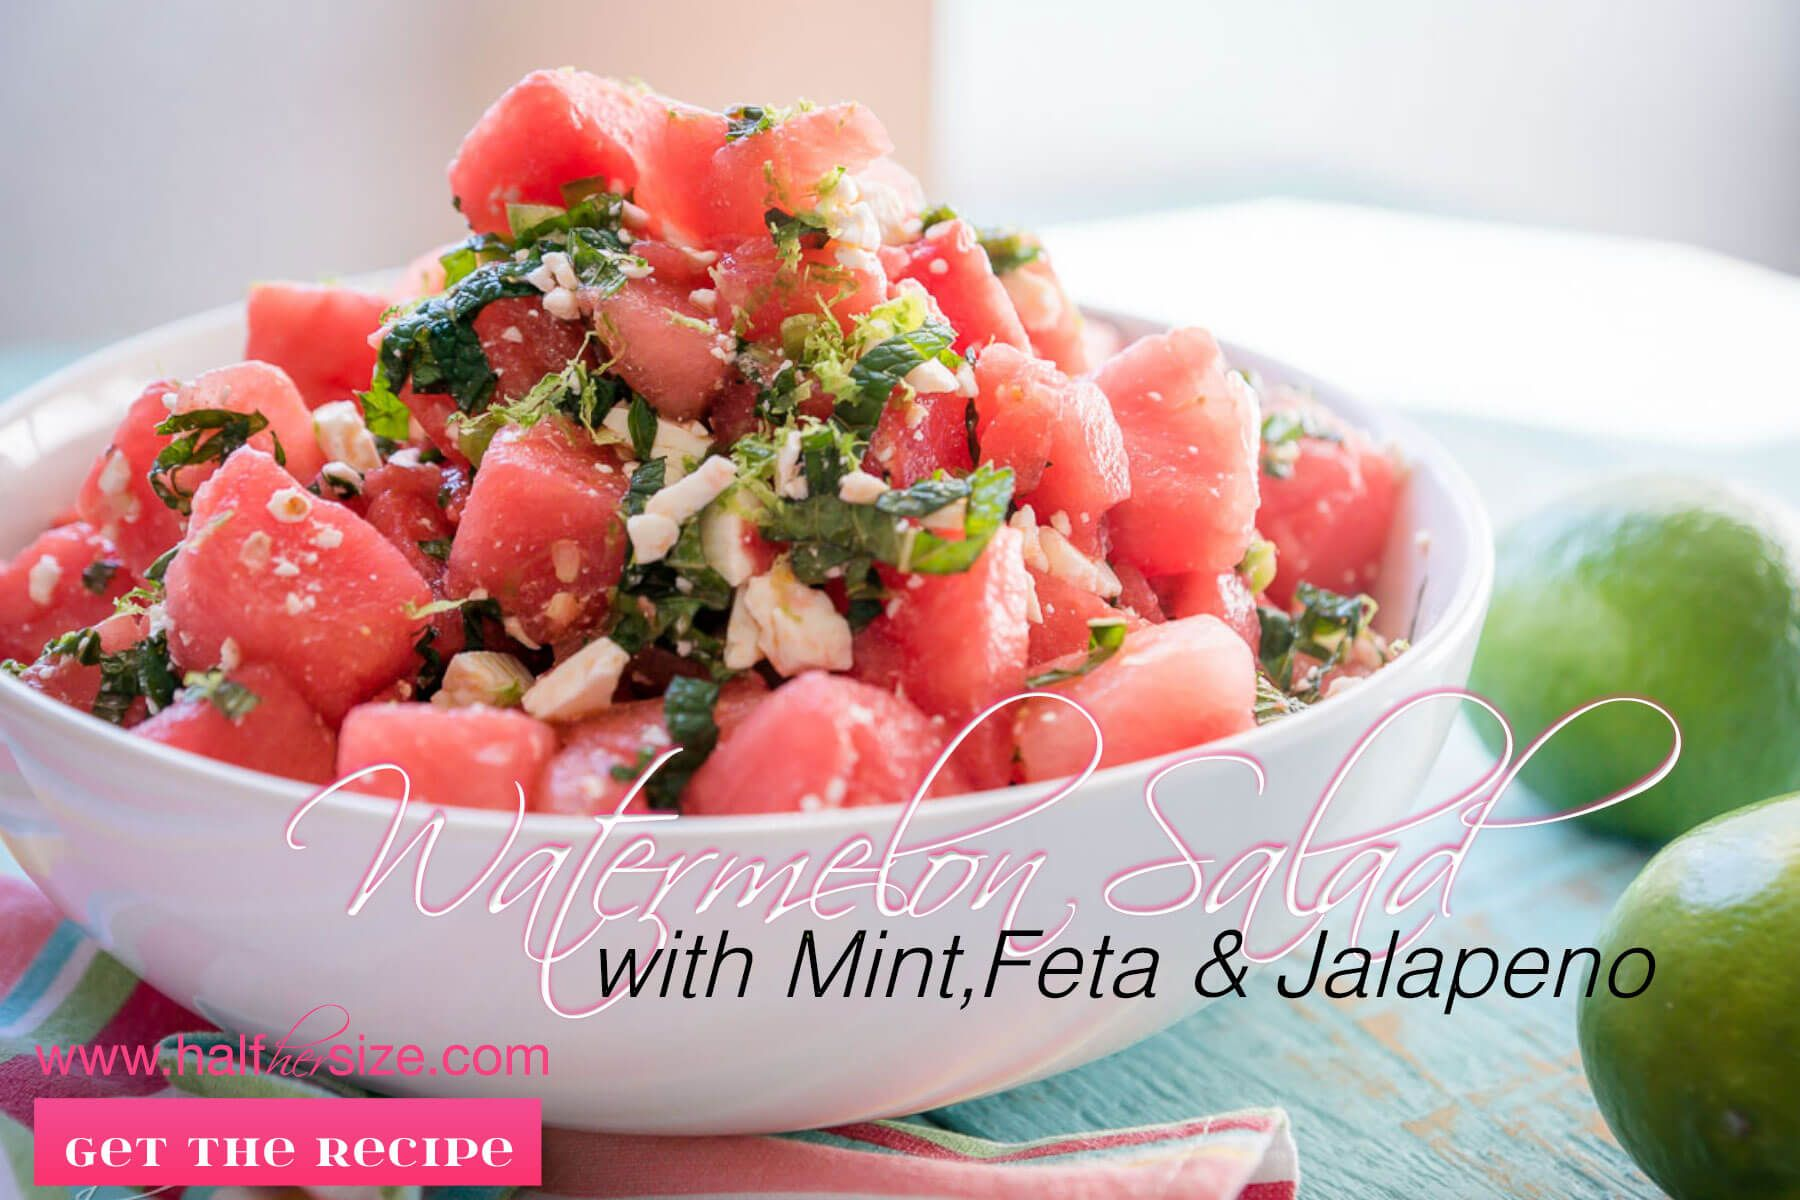 Zesty watermelon salad is a slightly more grown up way to serve everyone's favorite simple summer side dish. Easy make and take picnic or barbecue recipe.